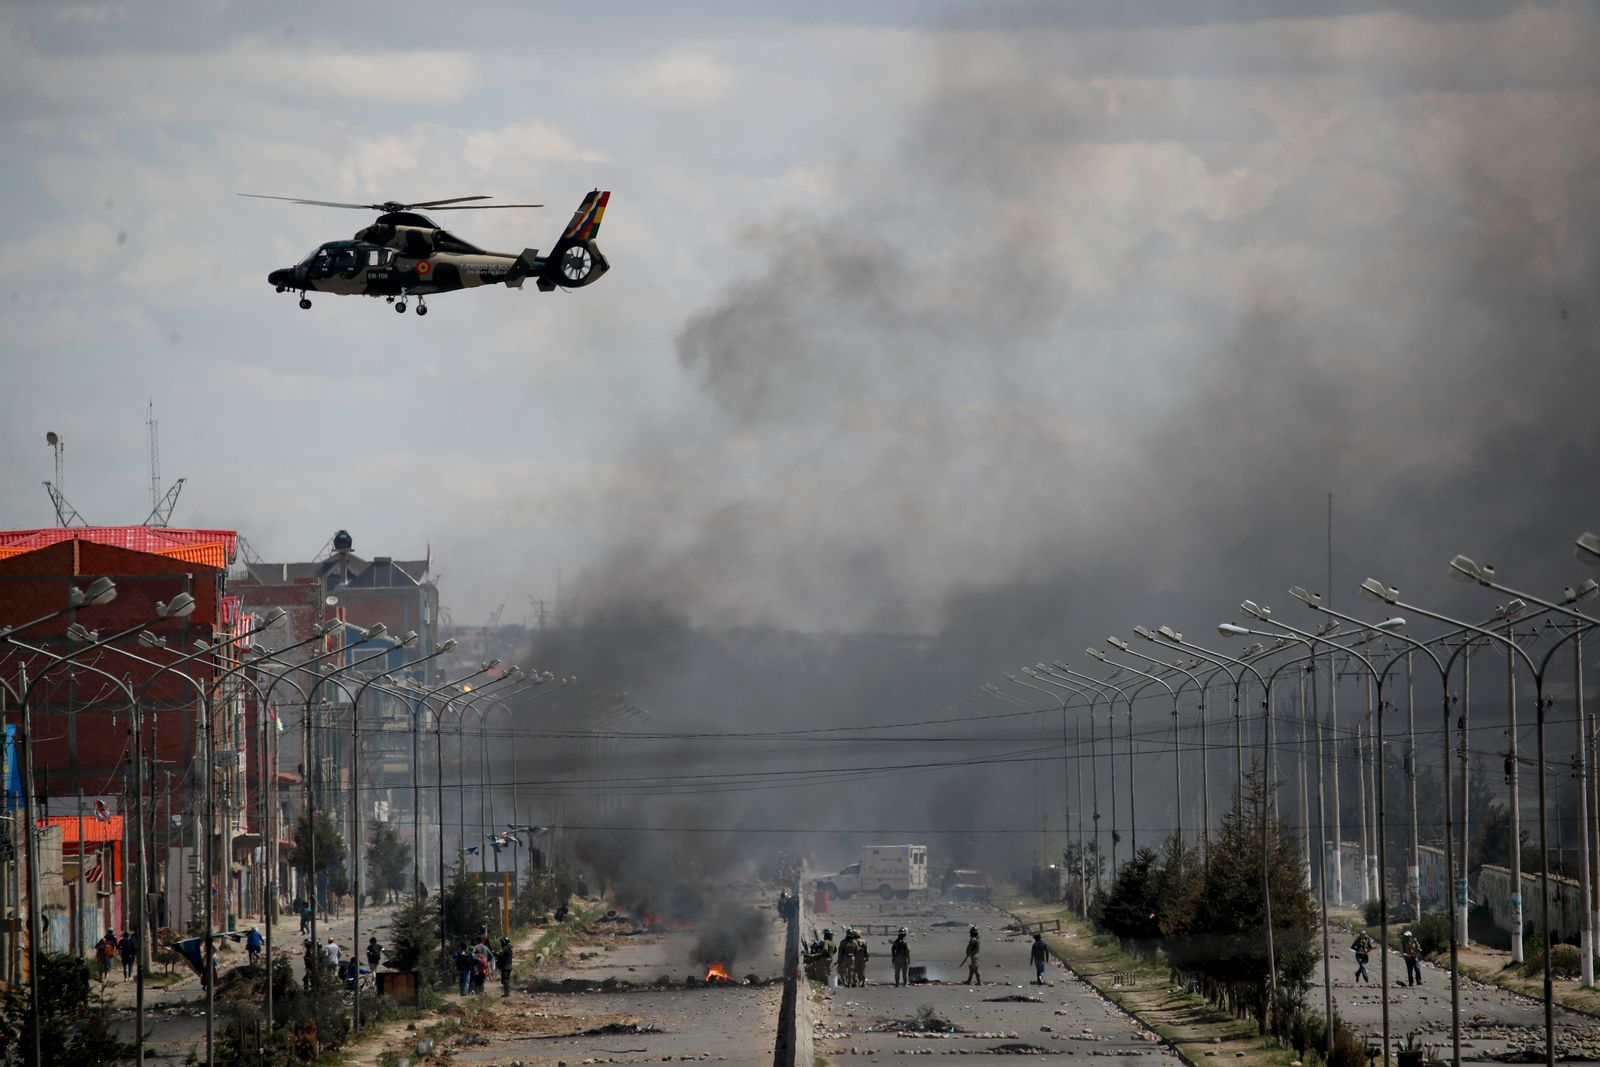 An Army helicopter flies over the road leading to the state-own Senkata filling gas plant in El Alto, on the outskirts of La Paz, Bolivia, as supporters of former President Evo Morales set up barricades, Tuesday, Nov. 19, 2019. (AP Photo/Natacha Pisarenko)